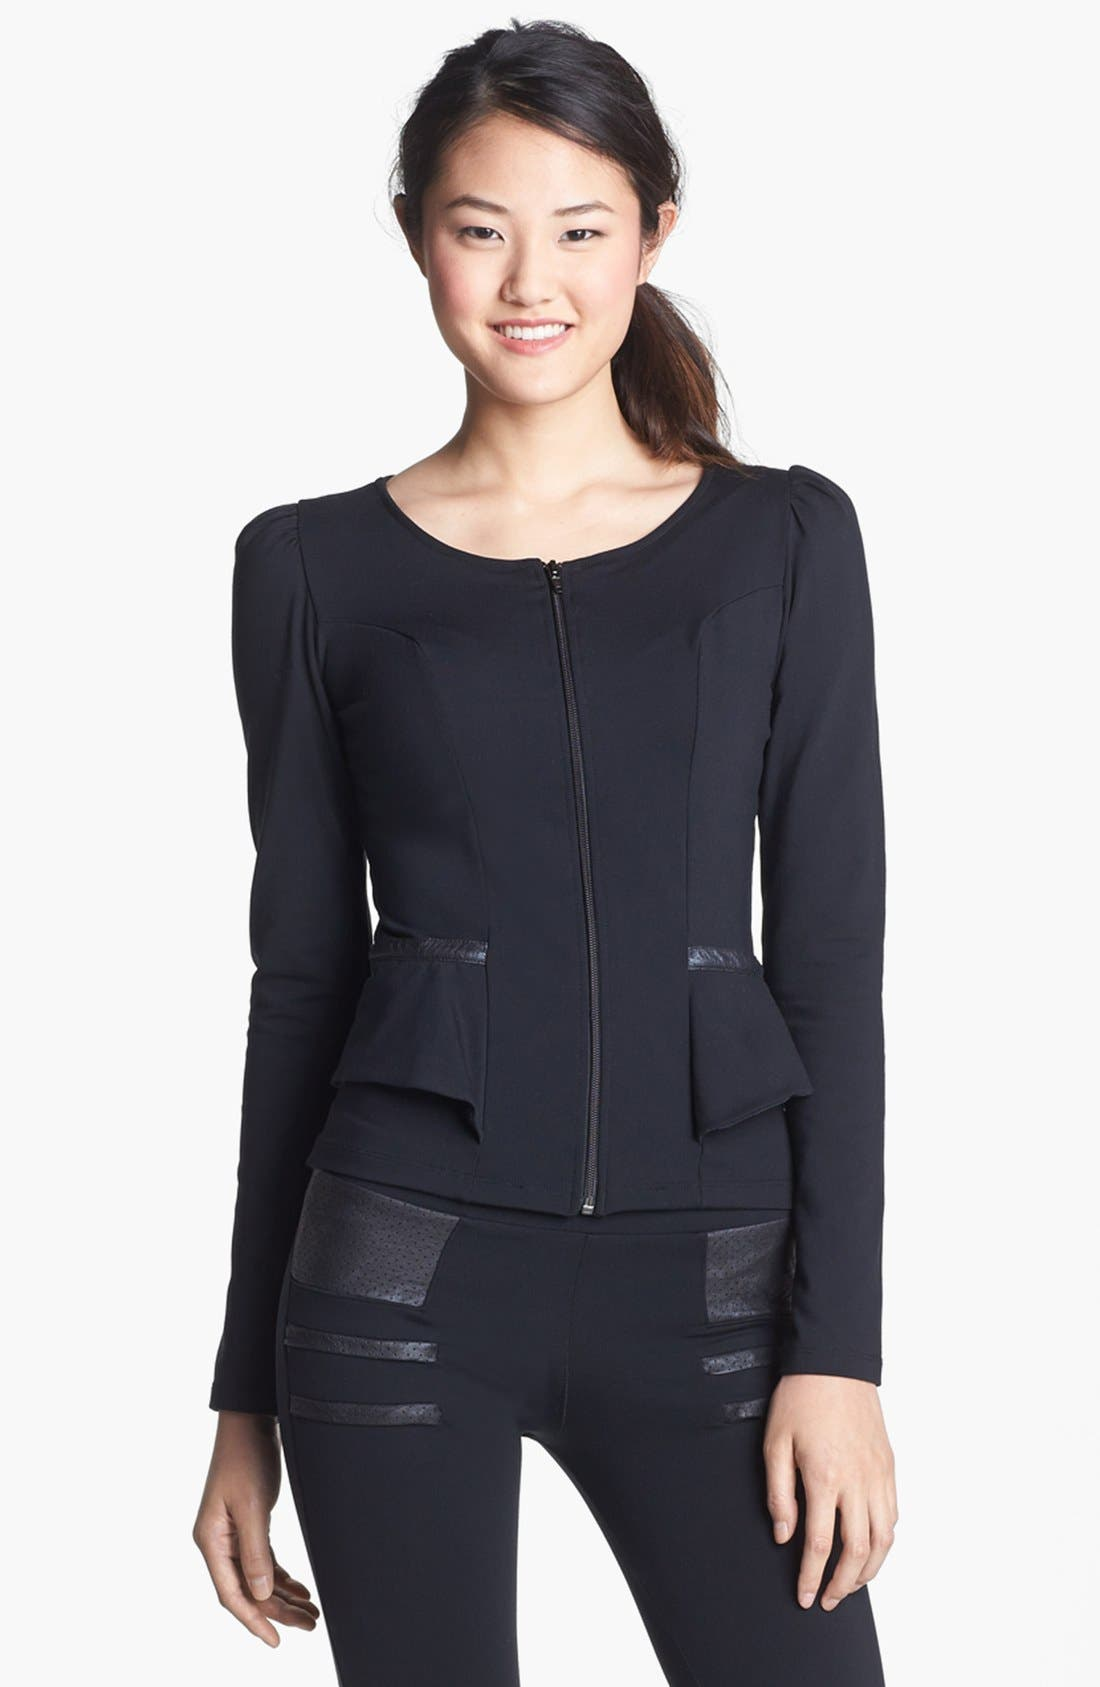 Alternate Image 1 Selected - Solow Faux Leather Trim Jacket